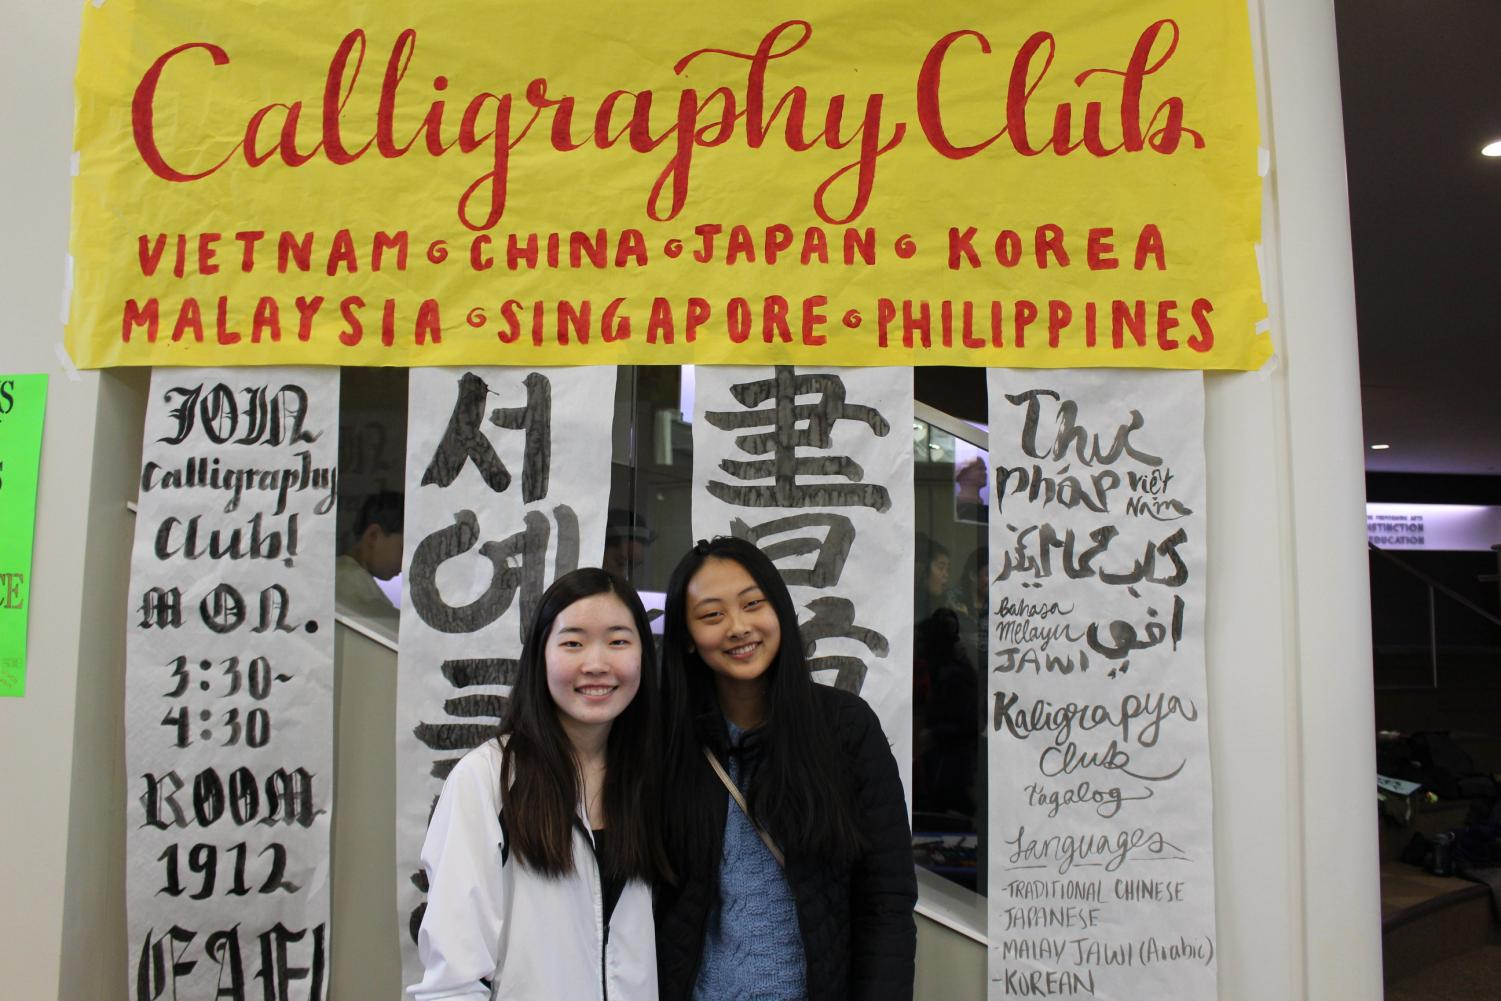 Calligraphy Club members Allison Liu '20 and Kara Lee '20 decorated their festival booth with exquisite brush strokes and watercolor pens.  The club also led a hands-on calligraphy activity for the children.